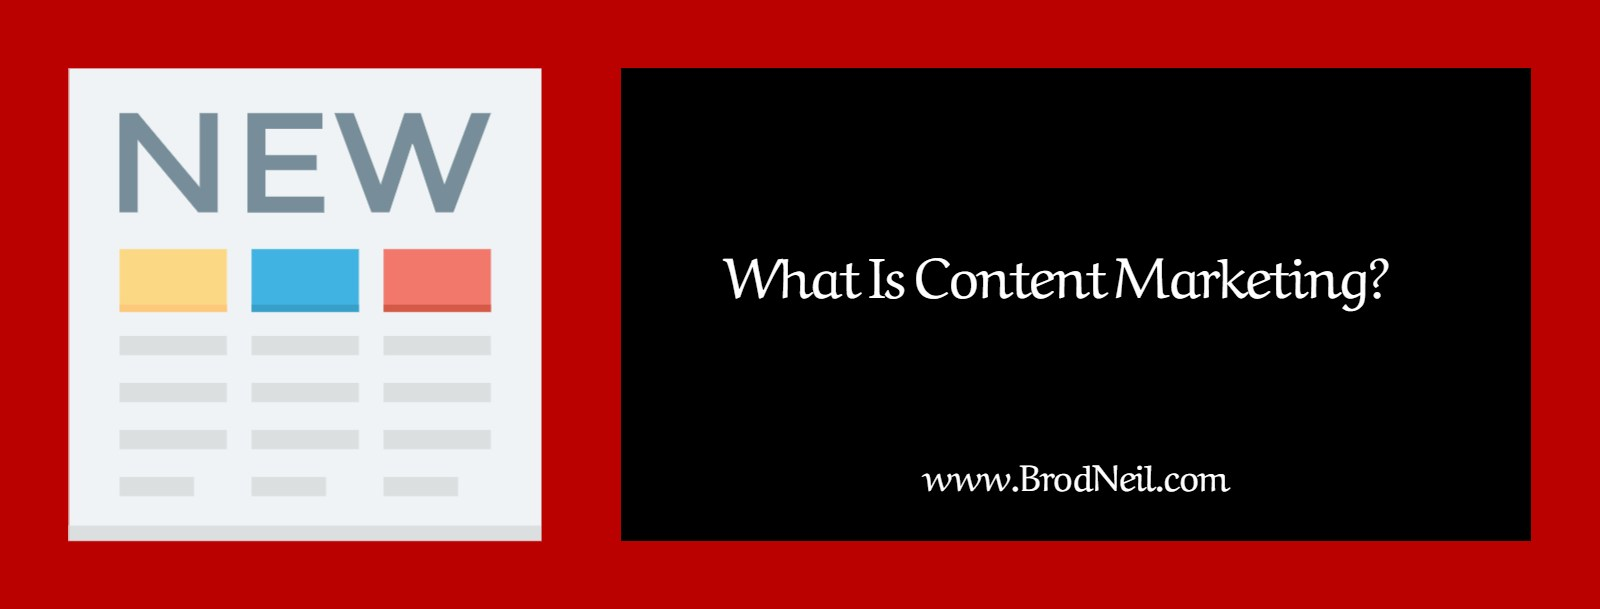 what is content marketing brodneil.com